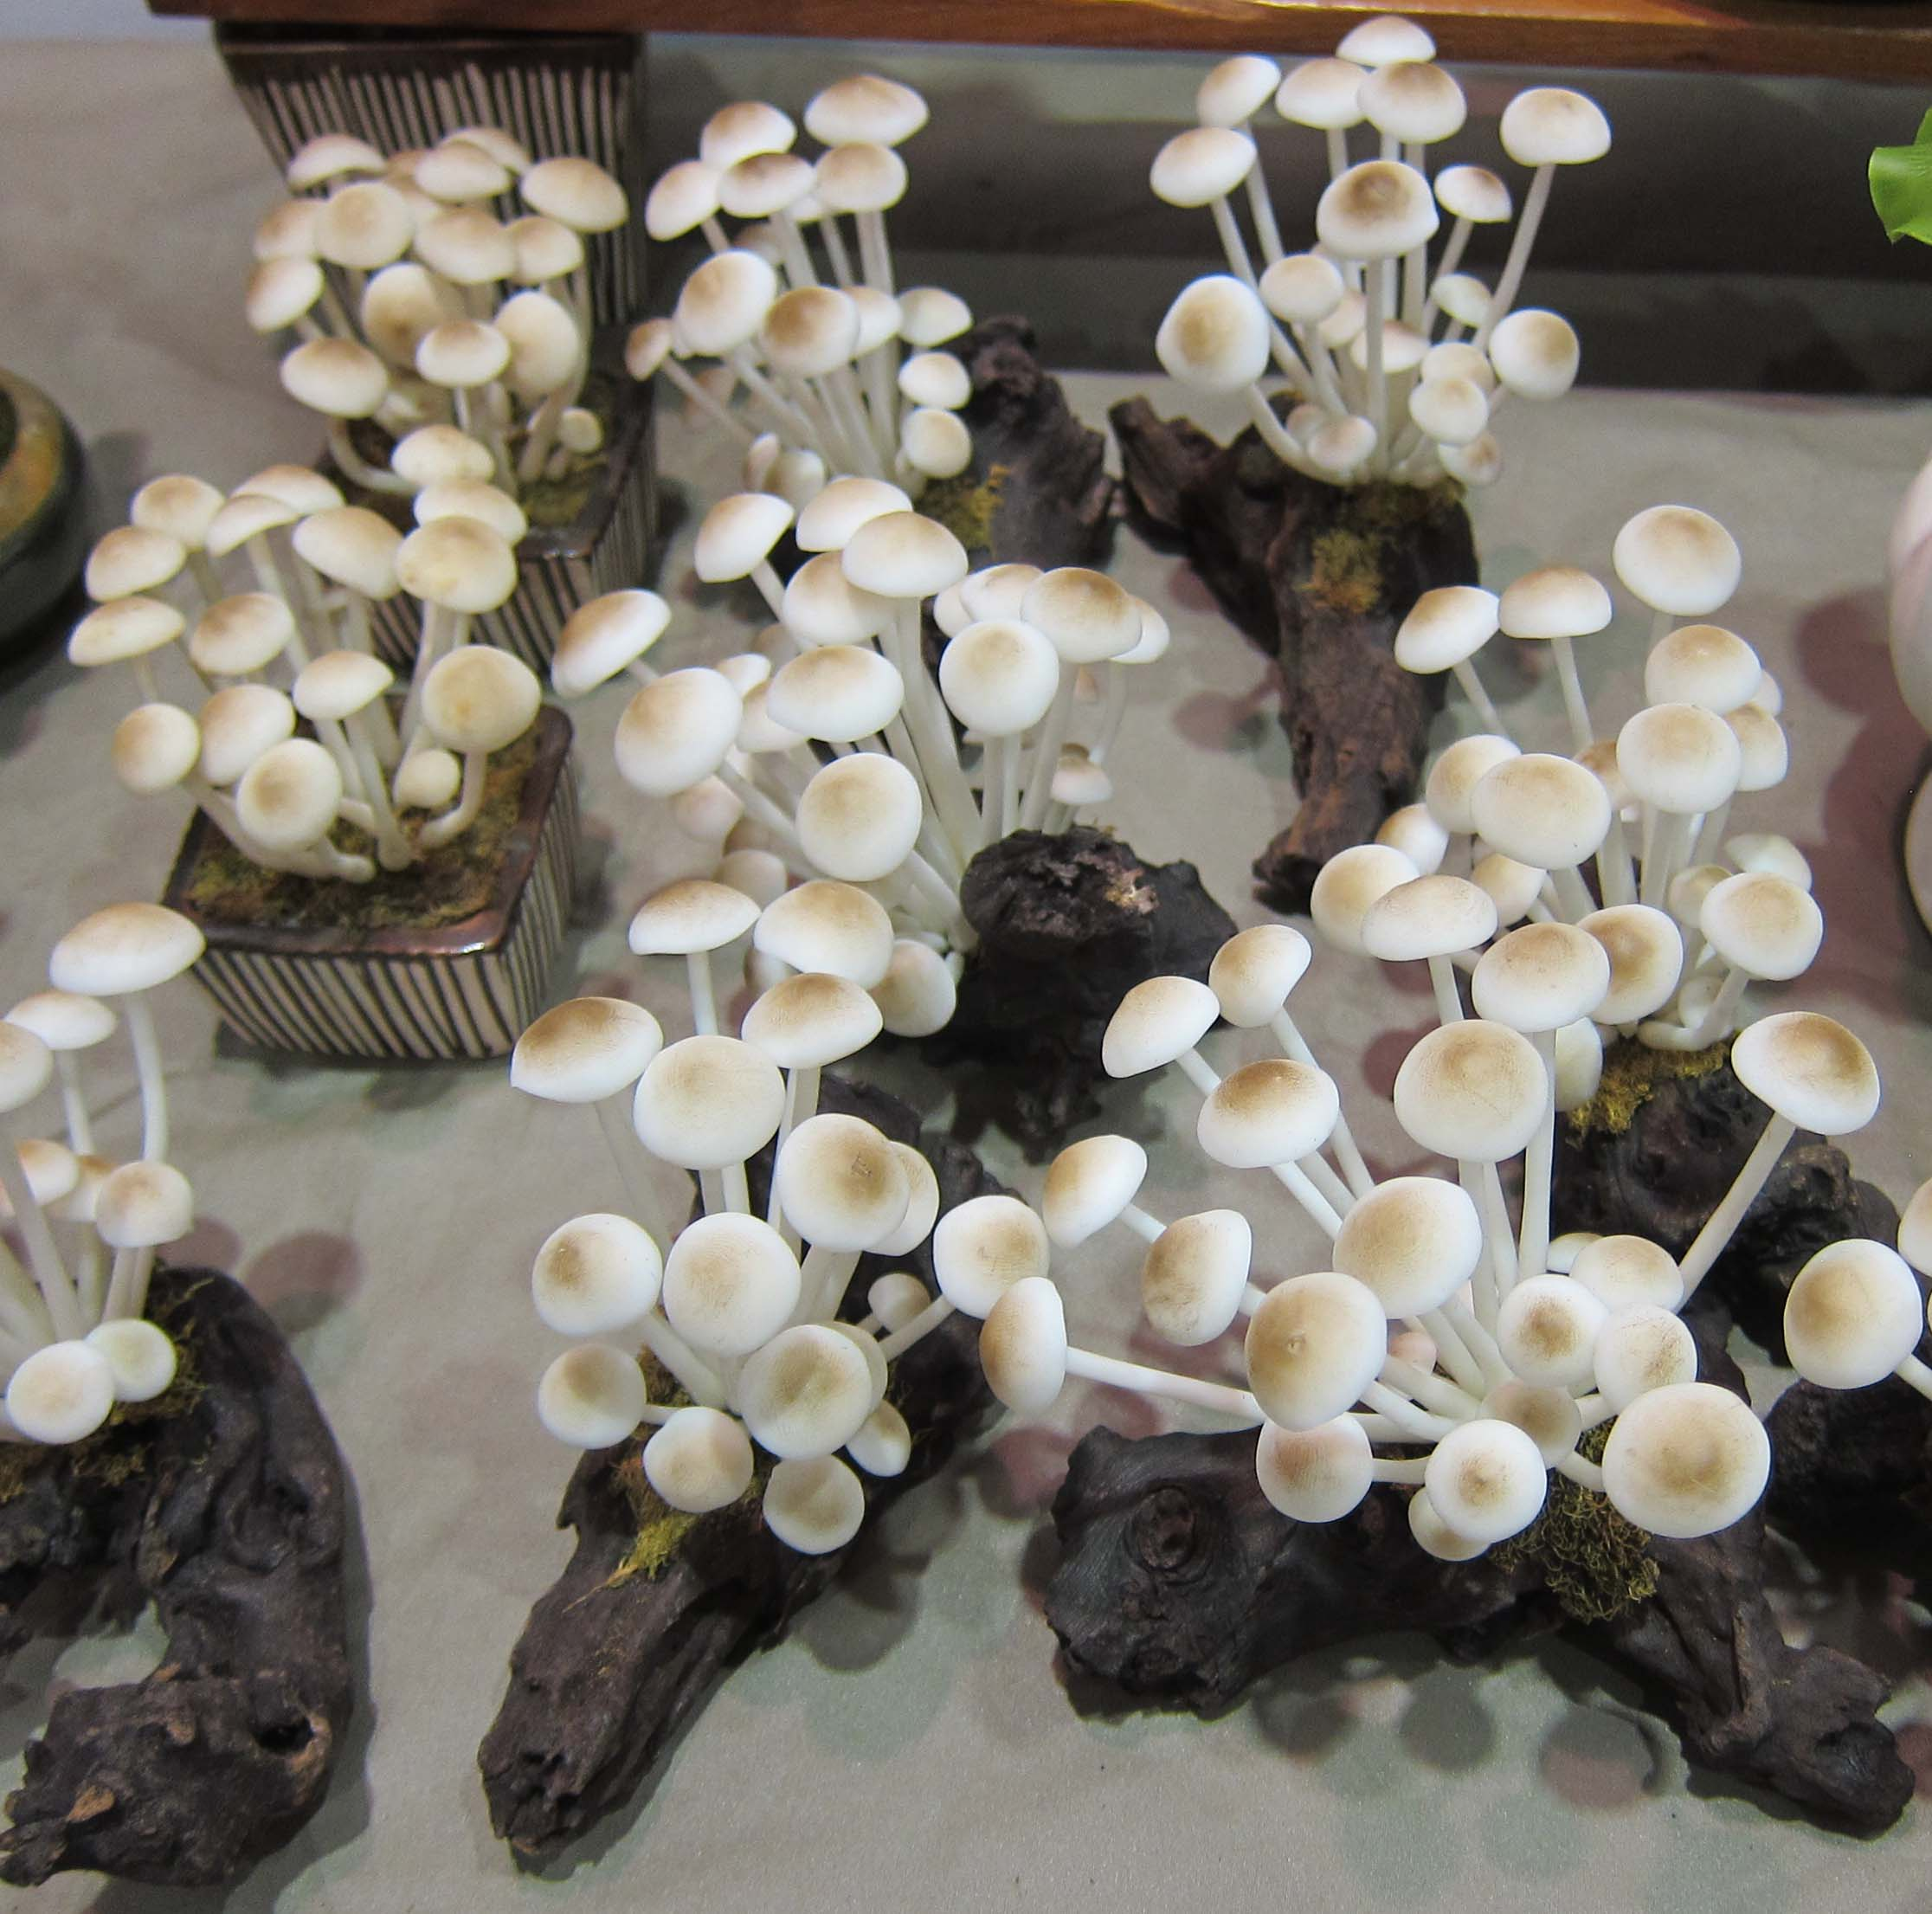 ArtificialMushroomFromClay-5